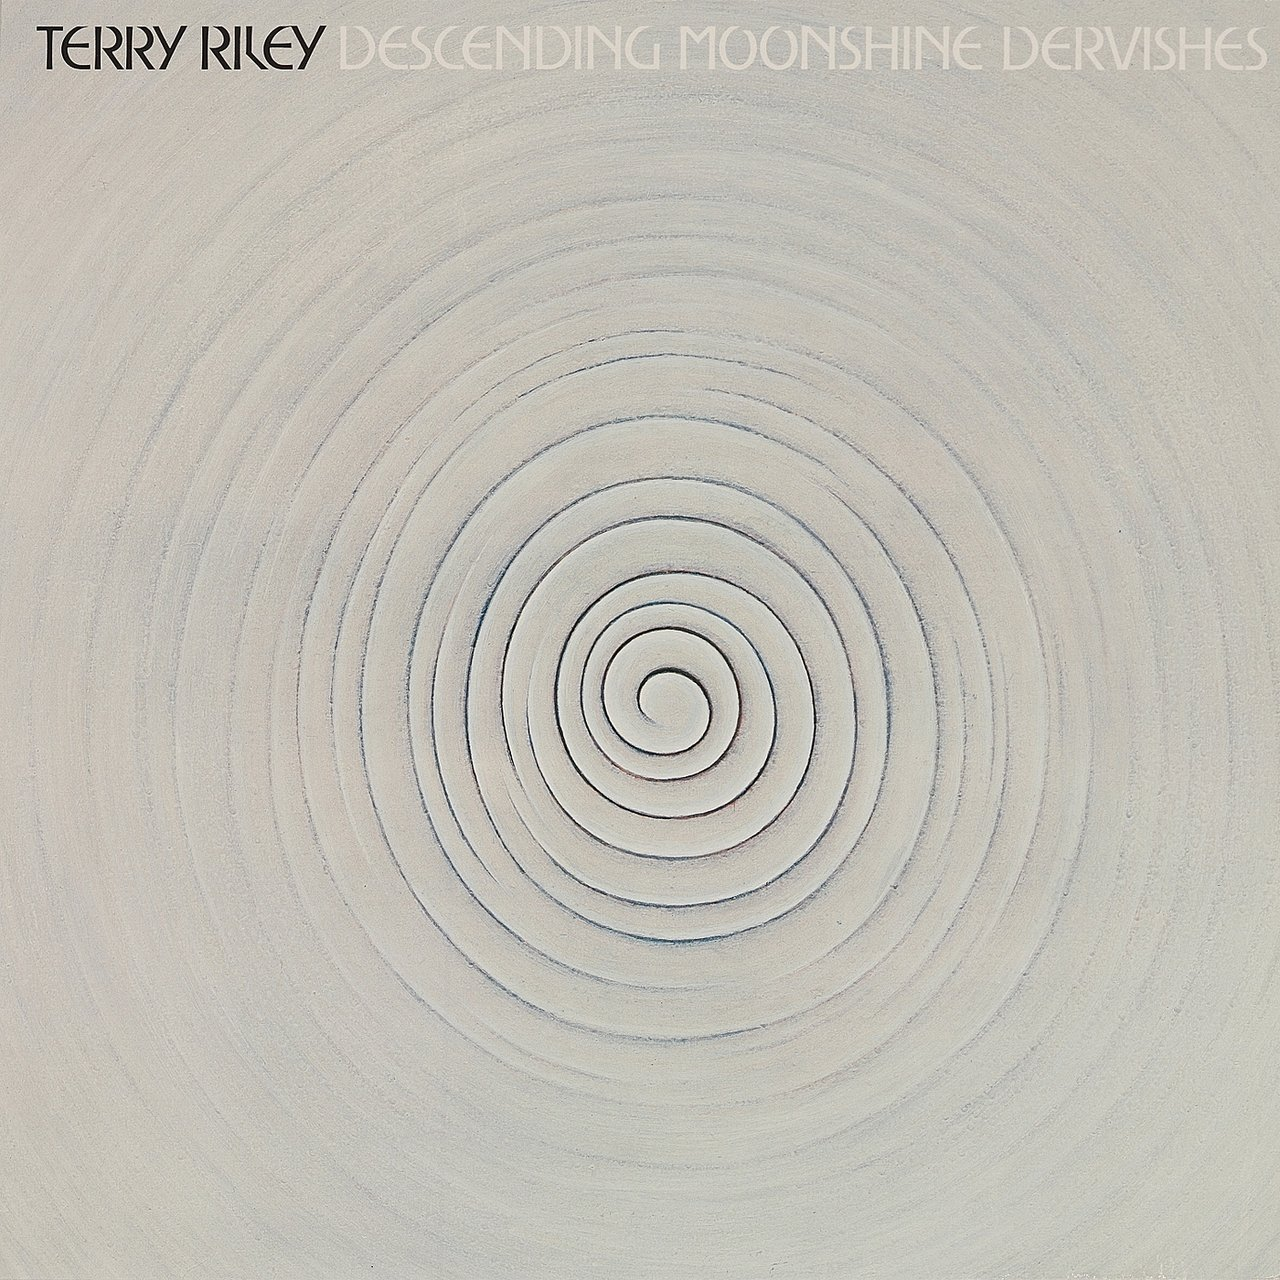 Terry Riley - Descending Moonshines Dervishes